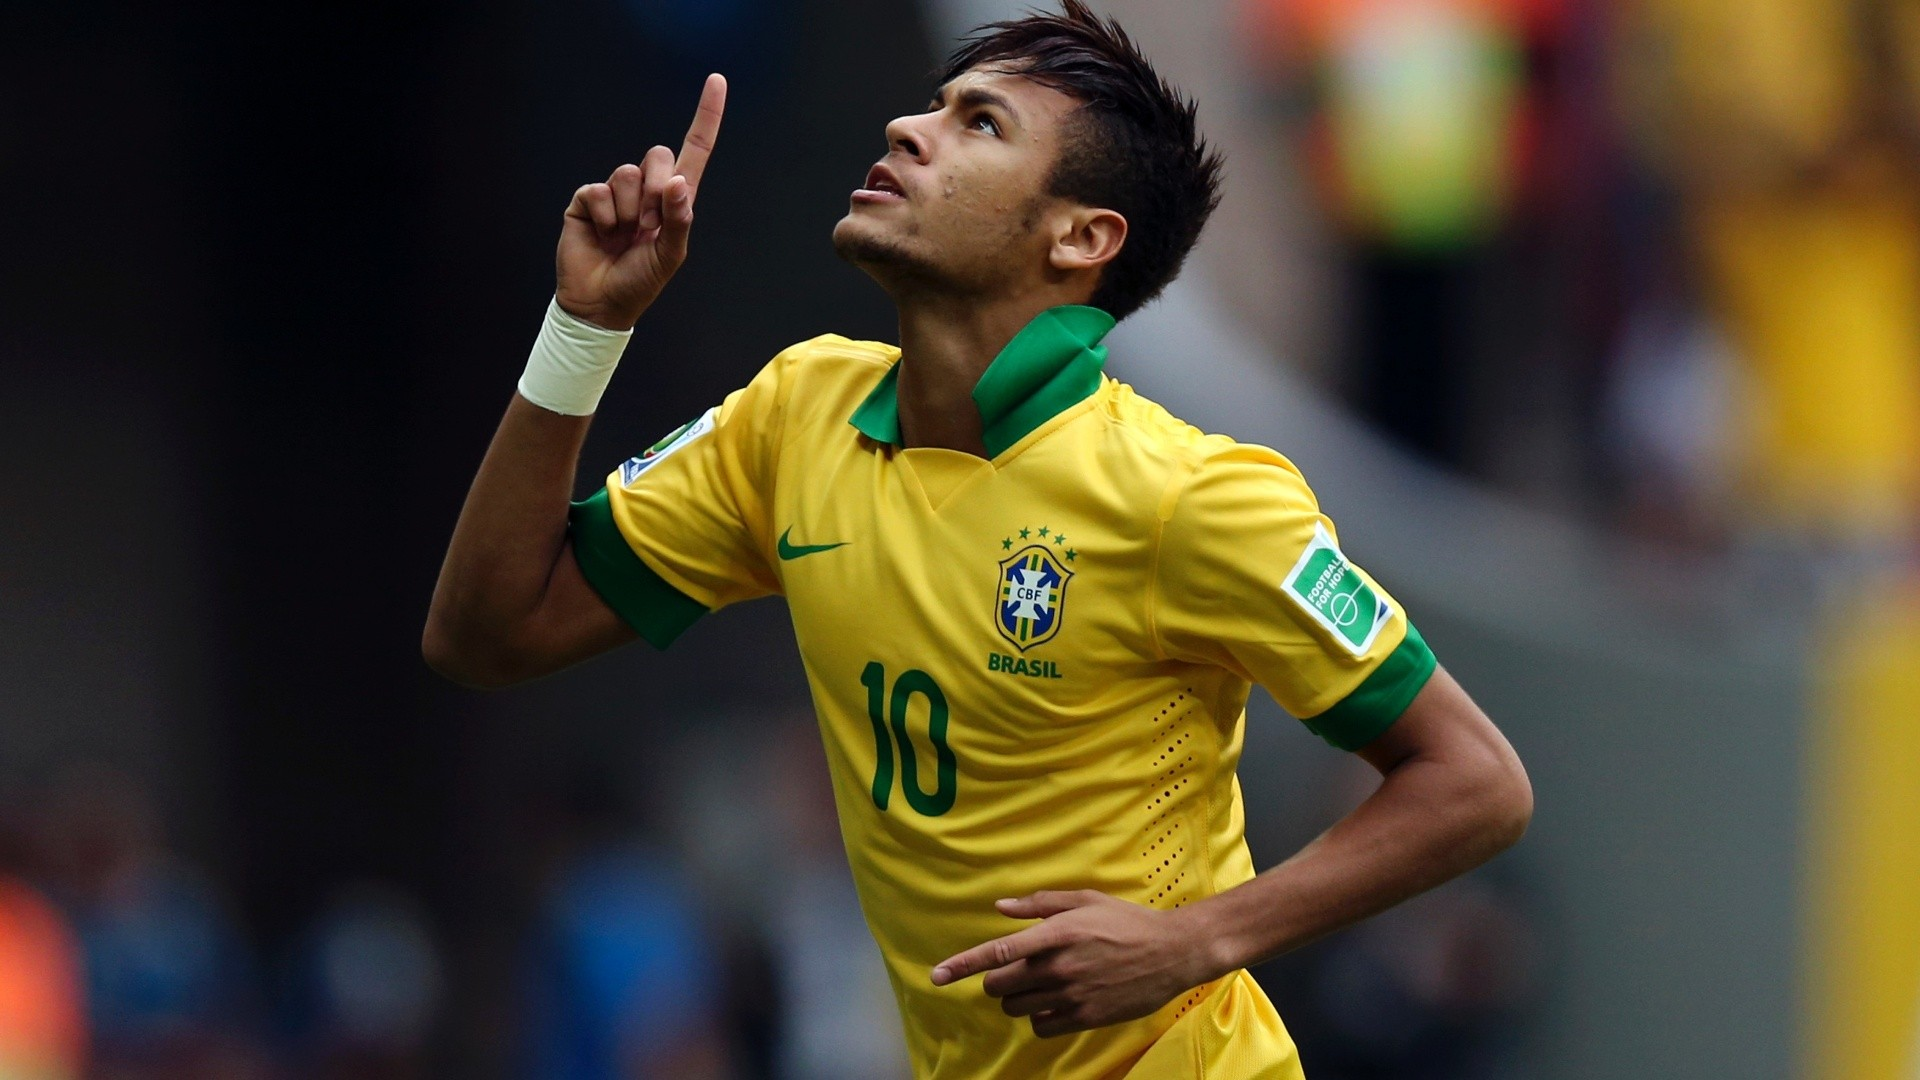 Neymar wallpaper, playing for Brazil in the Confederations Cup in 2013